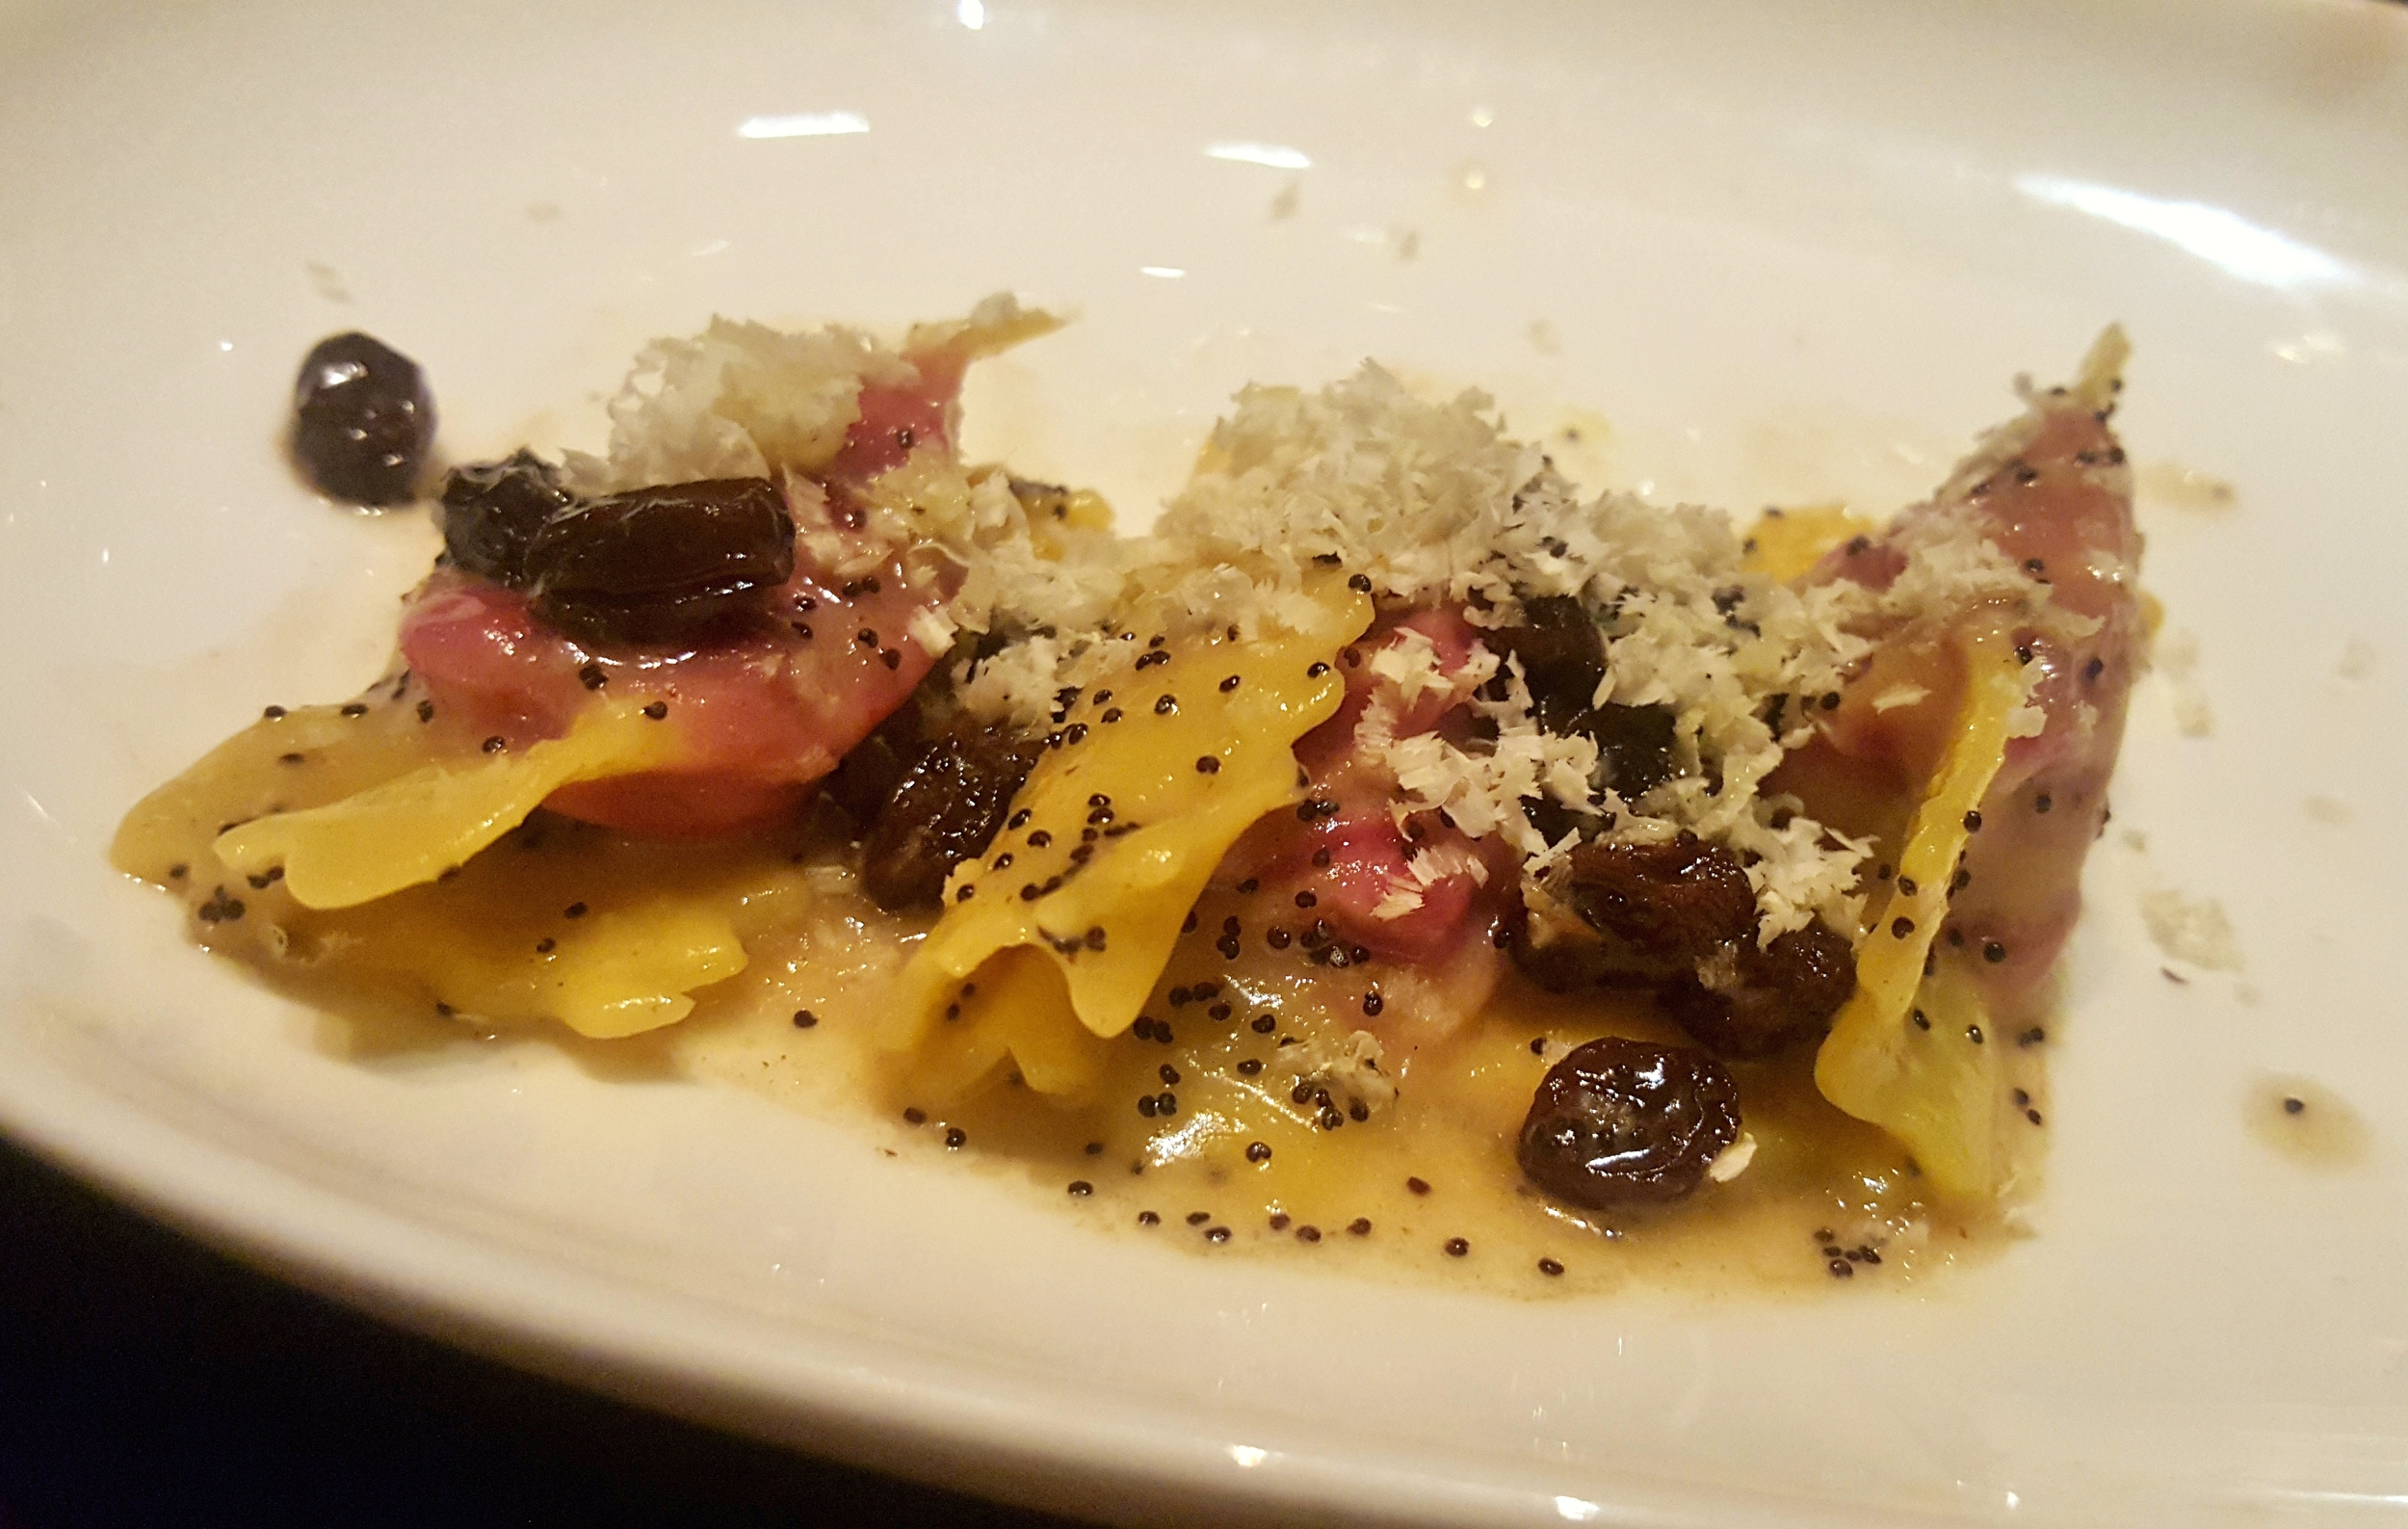 Pasta with beets, horseradish and raisins